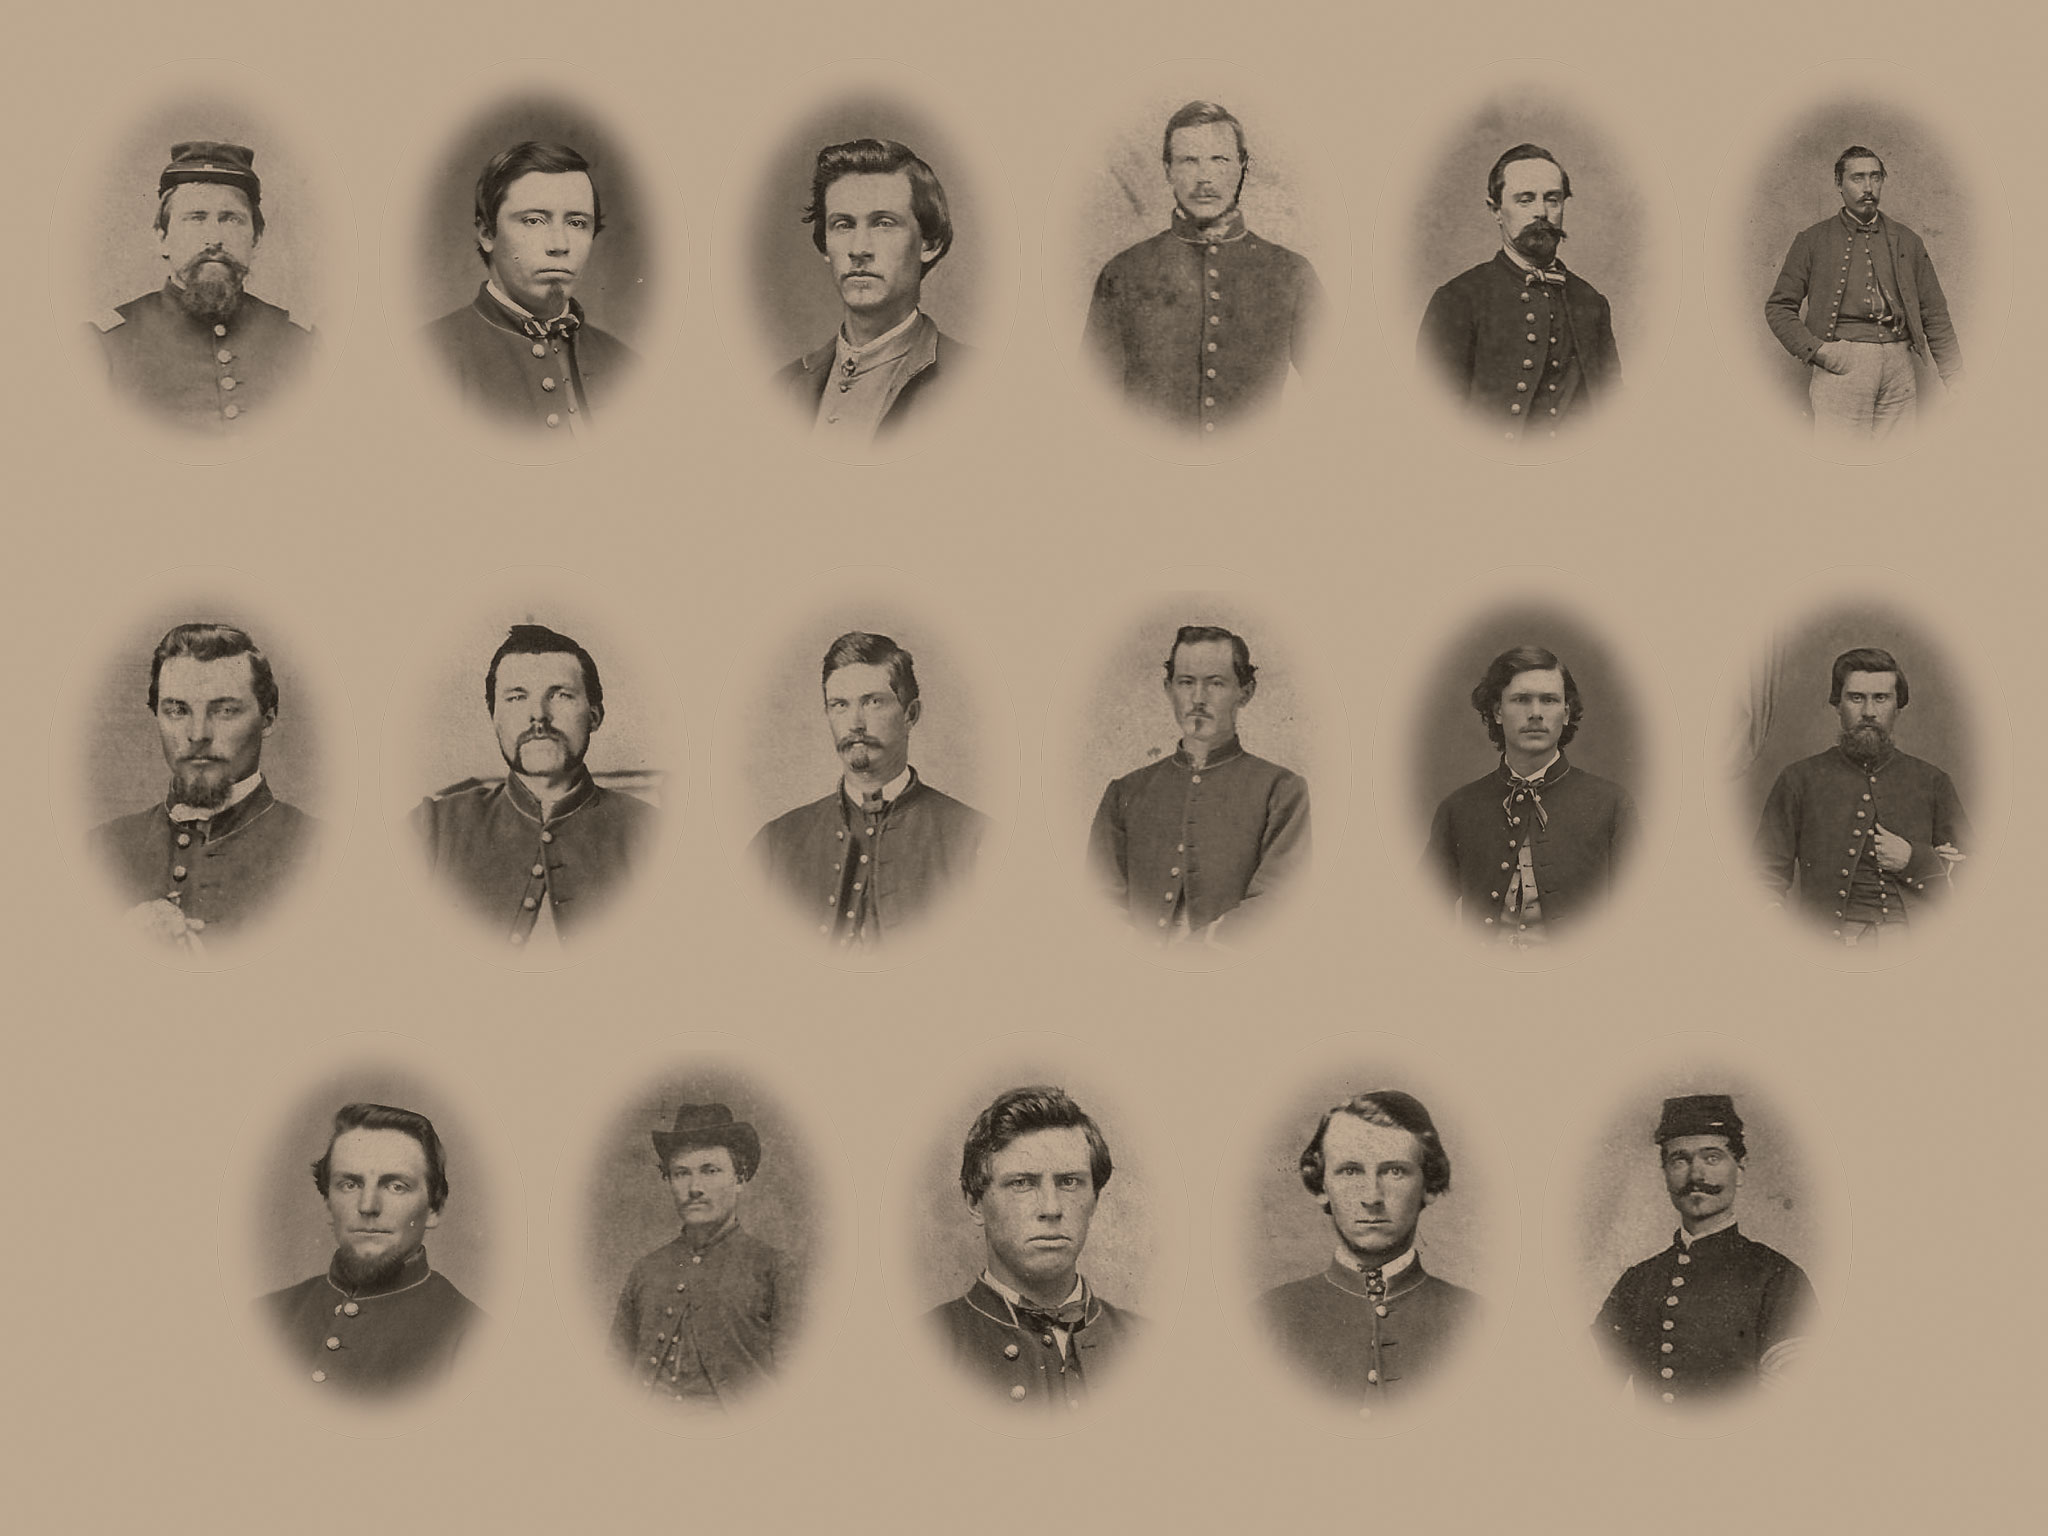 Top row, from left:Nelson Gill, Walter T. Hall, Charles E. Shinn, Edward H. Ingraham, William Mayo andCharles Andrews. Middlerow: Luther J. Clark, Frederick Holtzkampf, George Fetzler, Laurence Jacobson, Charles Hubbard andMartin Stark. Bottom row:Wallace Johnson, Harrison W. Ellis, Lucius Rew, Charles H. Keys and Bradford Wakeman.